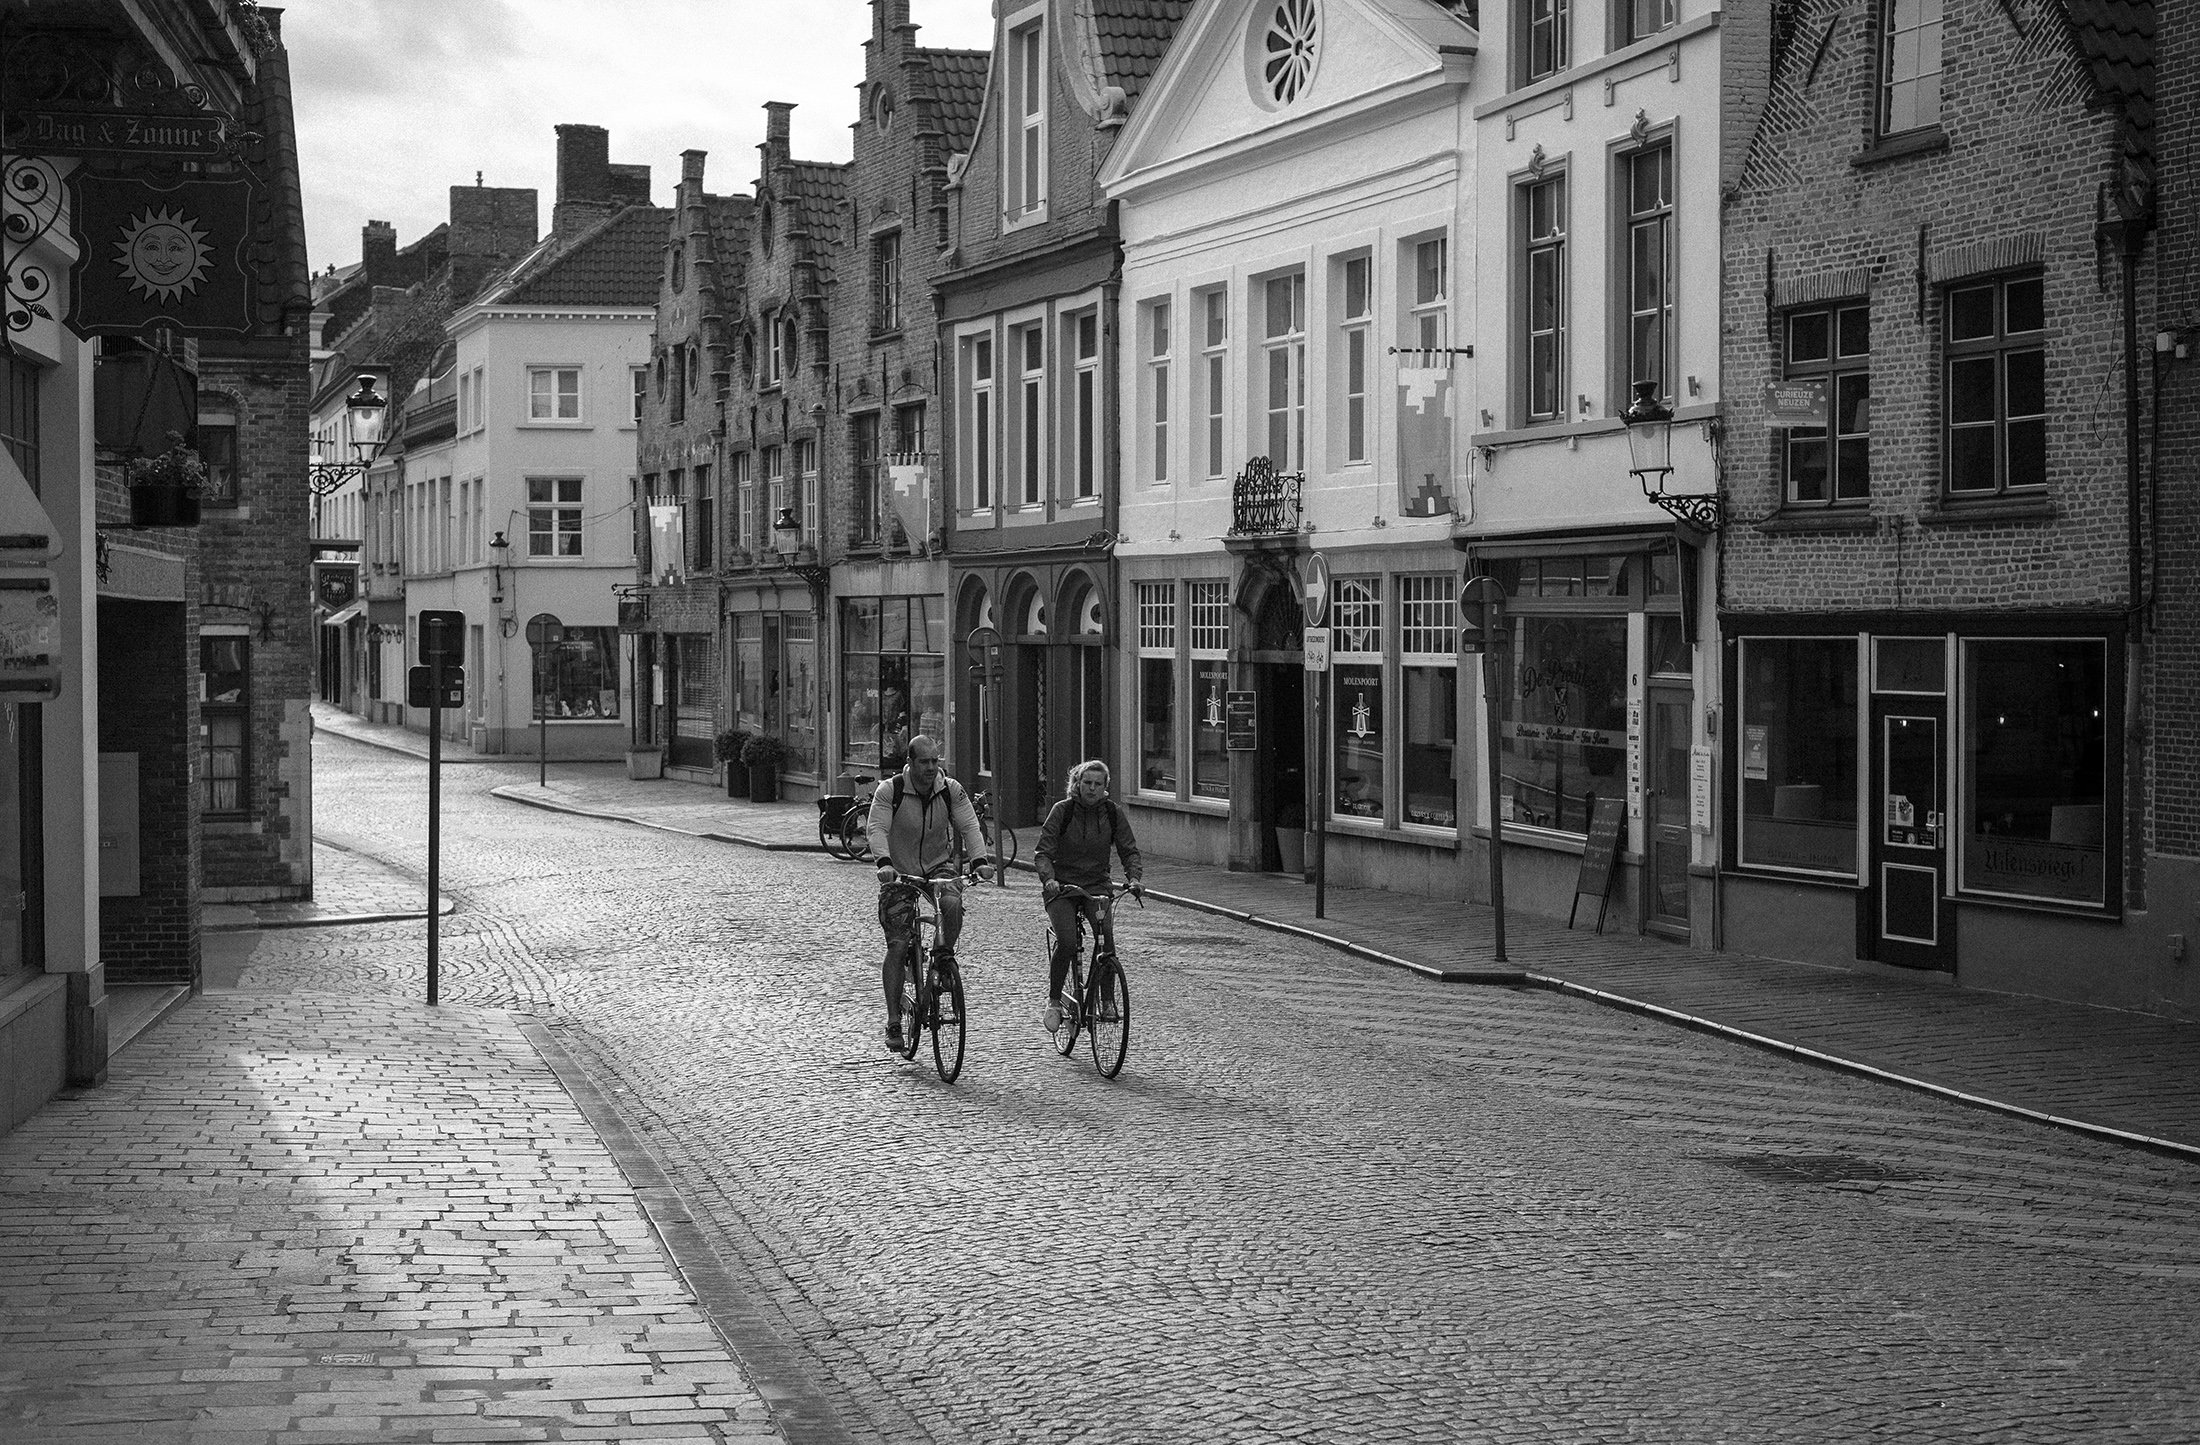 people on bicycle - street - Belgium Bruges - black and white photograph - Patricia Martins Yellowish blog